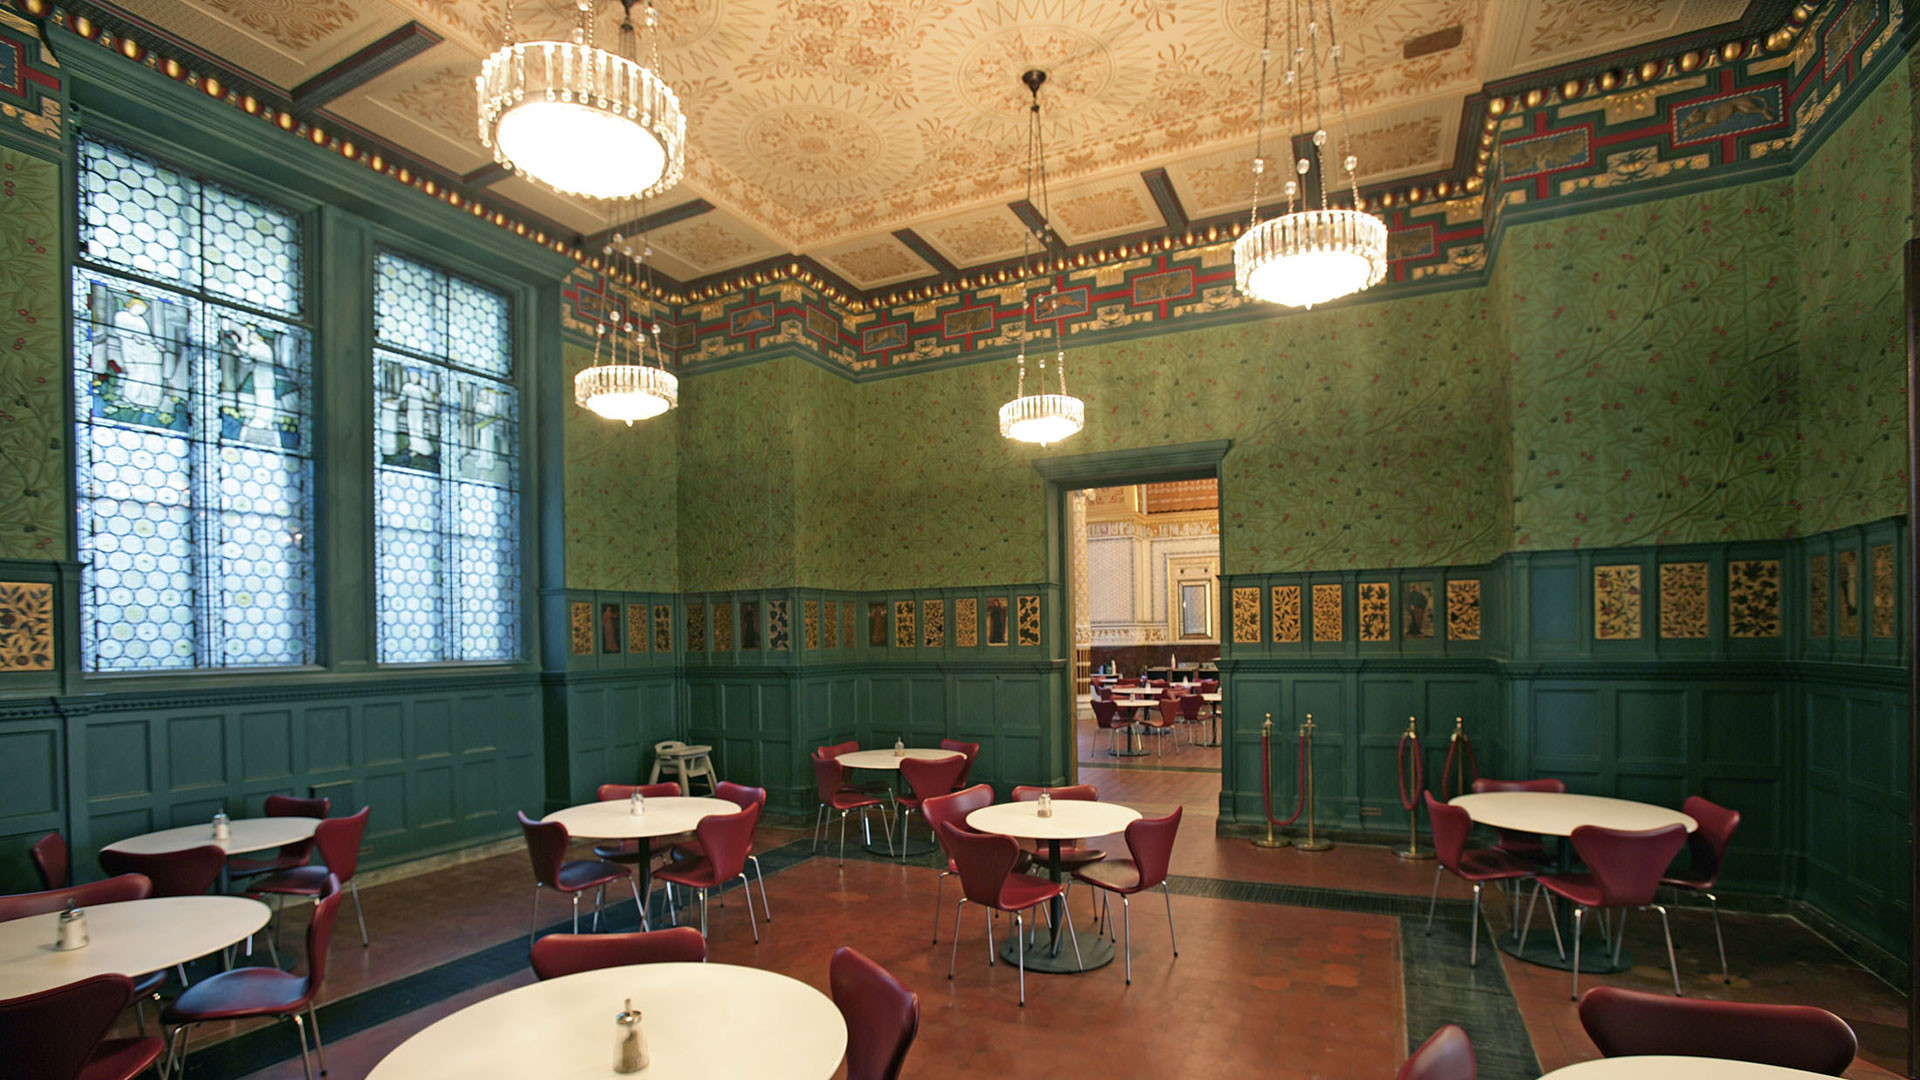 William Morris Room in the V&A Café